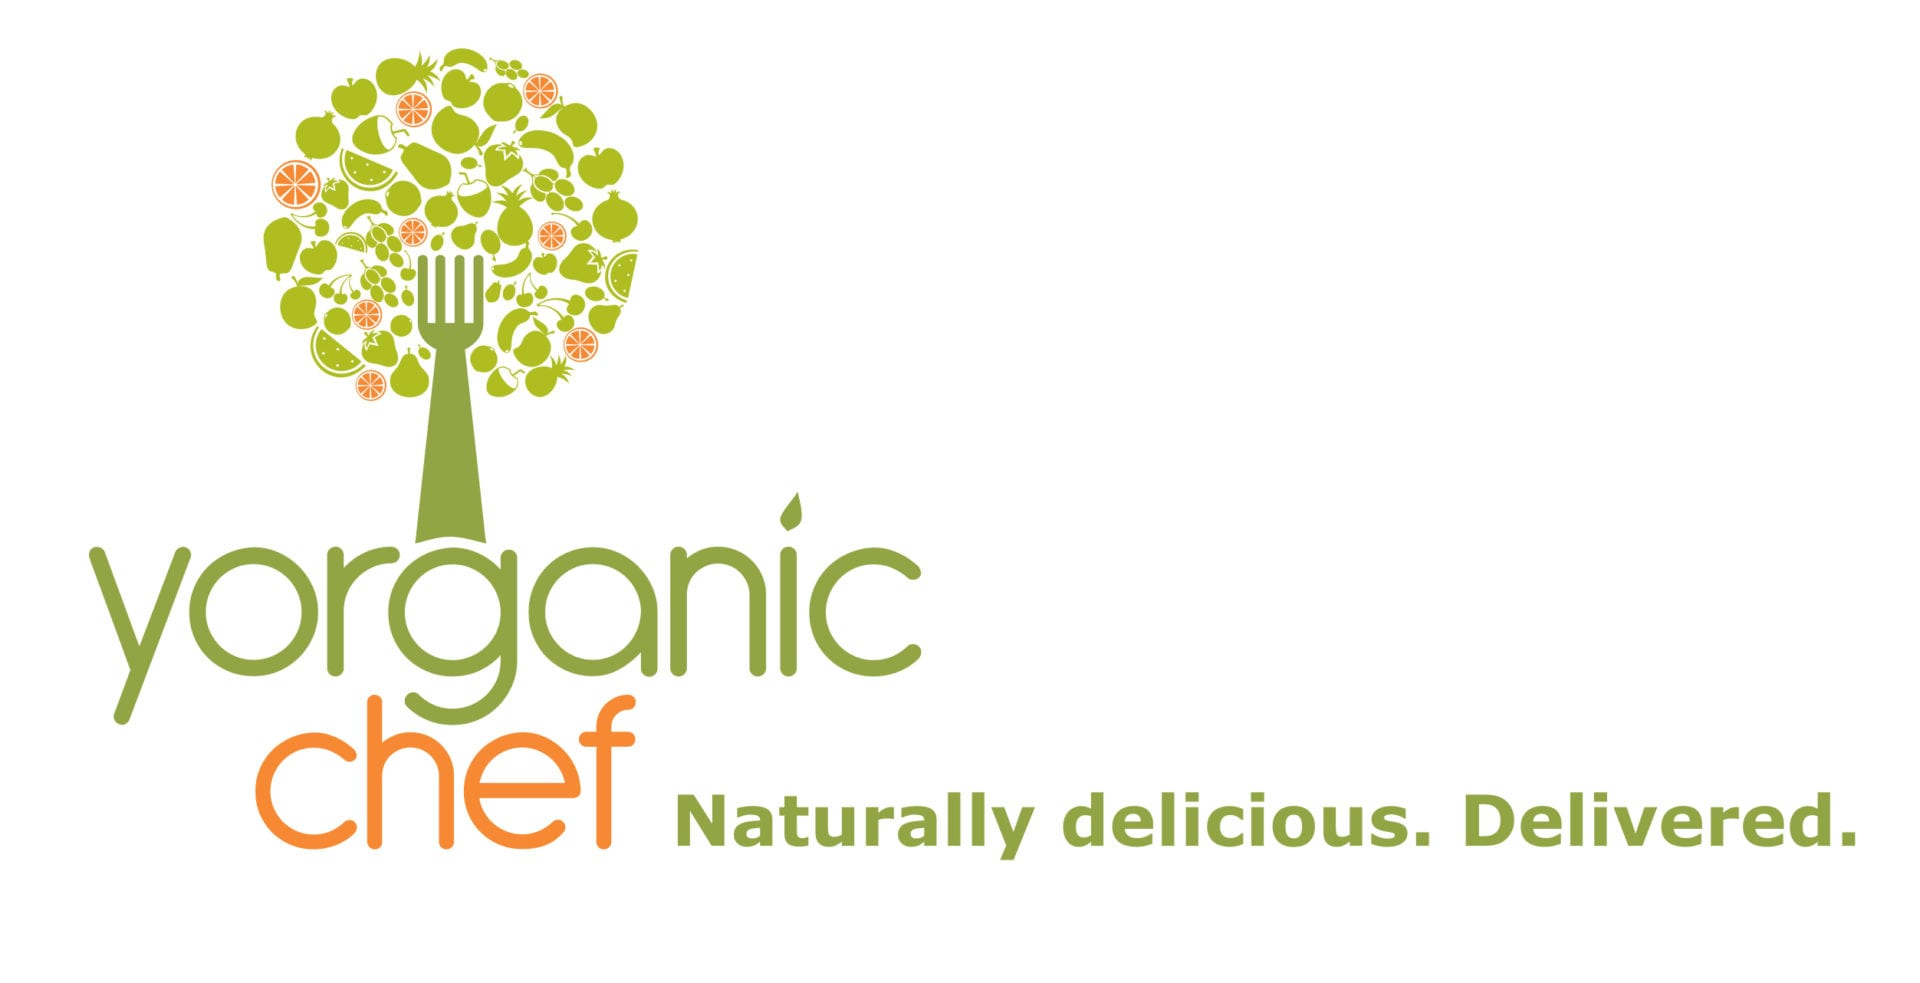 The Yorganic Chef logo designed by Canyon Creative